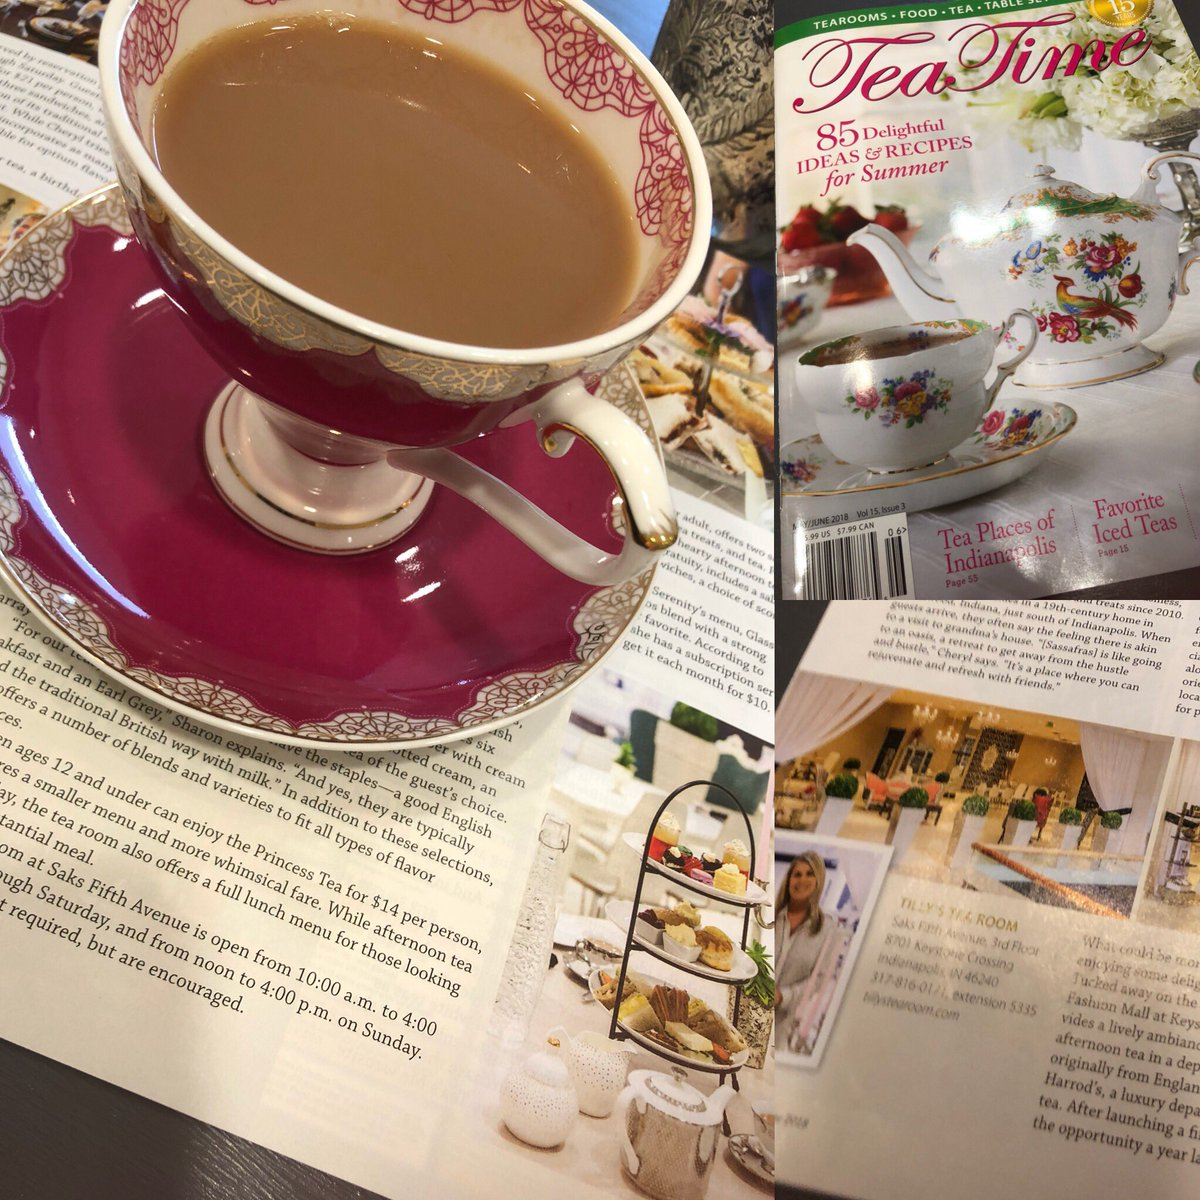 indytearooms hashtag on Twitter